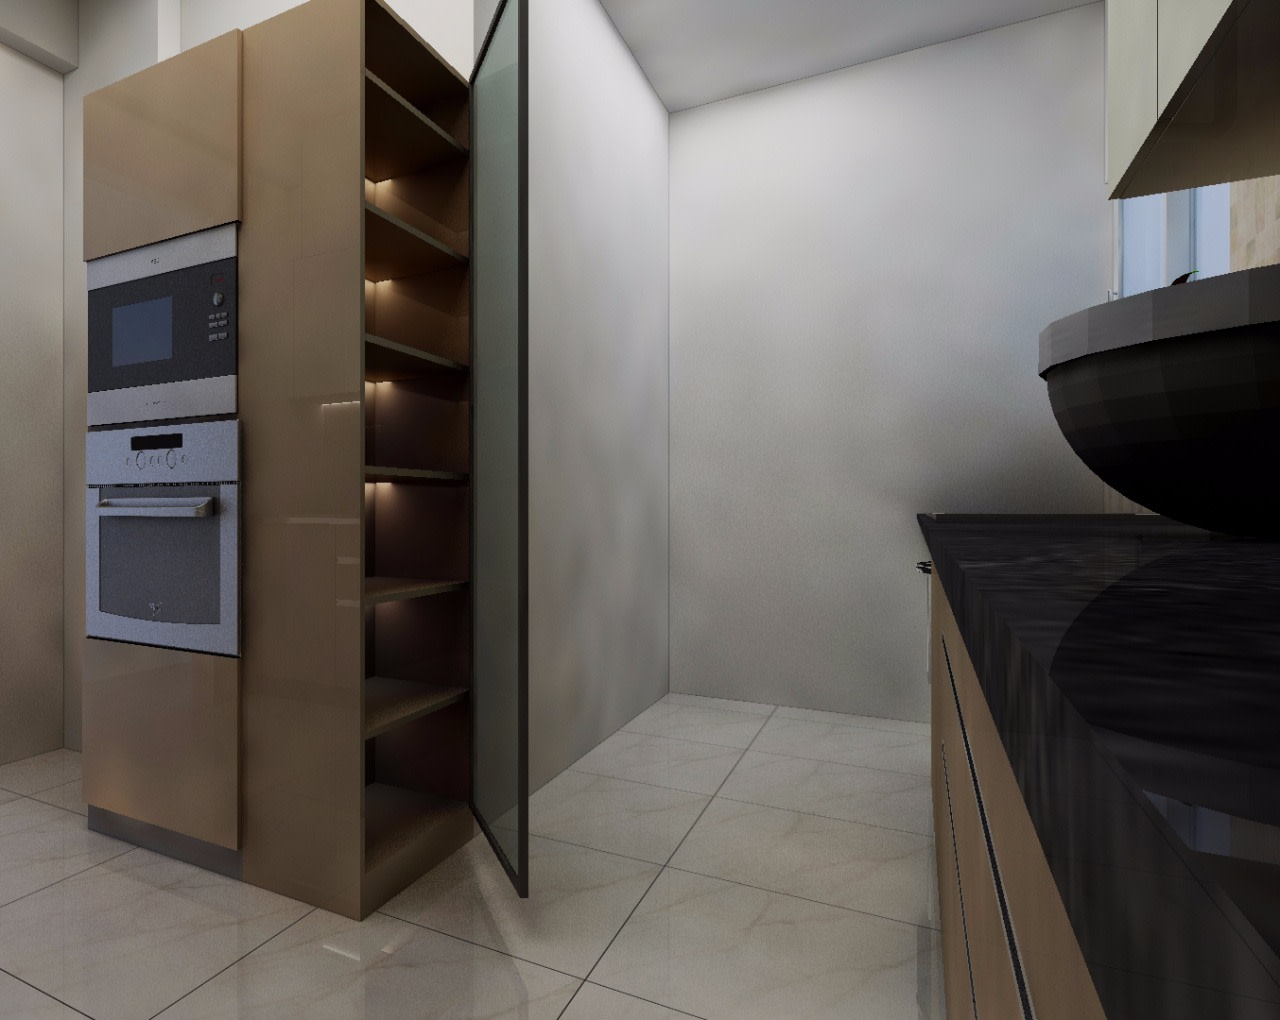 Gadget equipped Kitchen Cabinets by Shwetha Modern | Interior Design Photos & Ideas